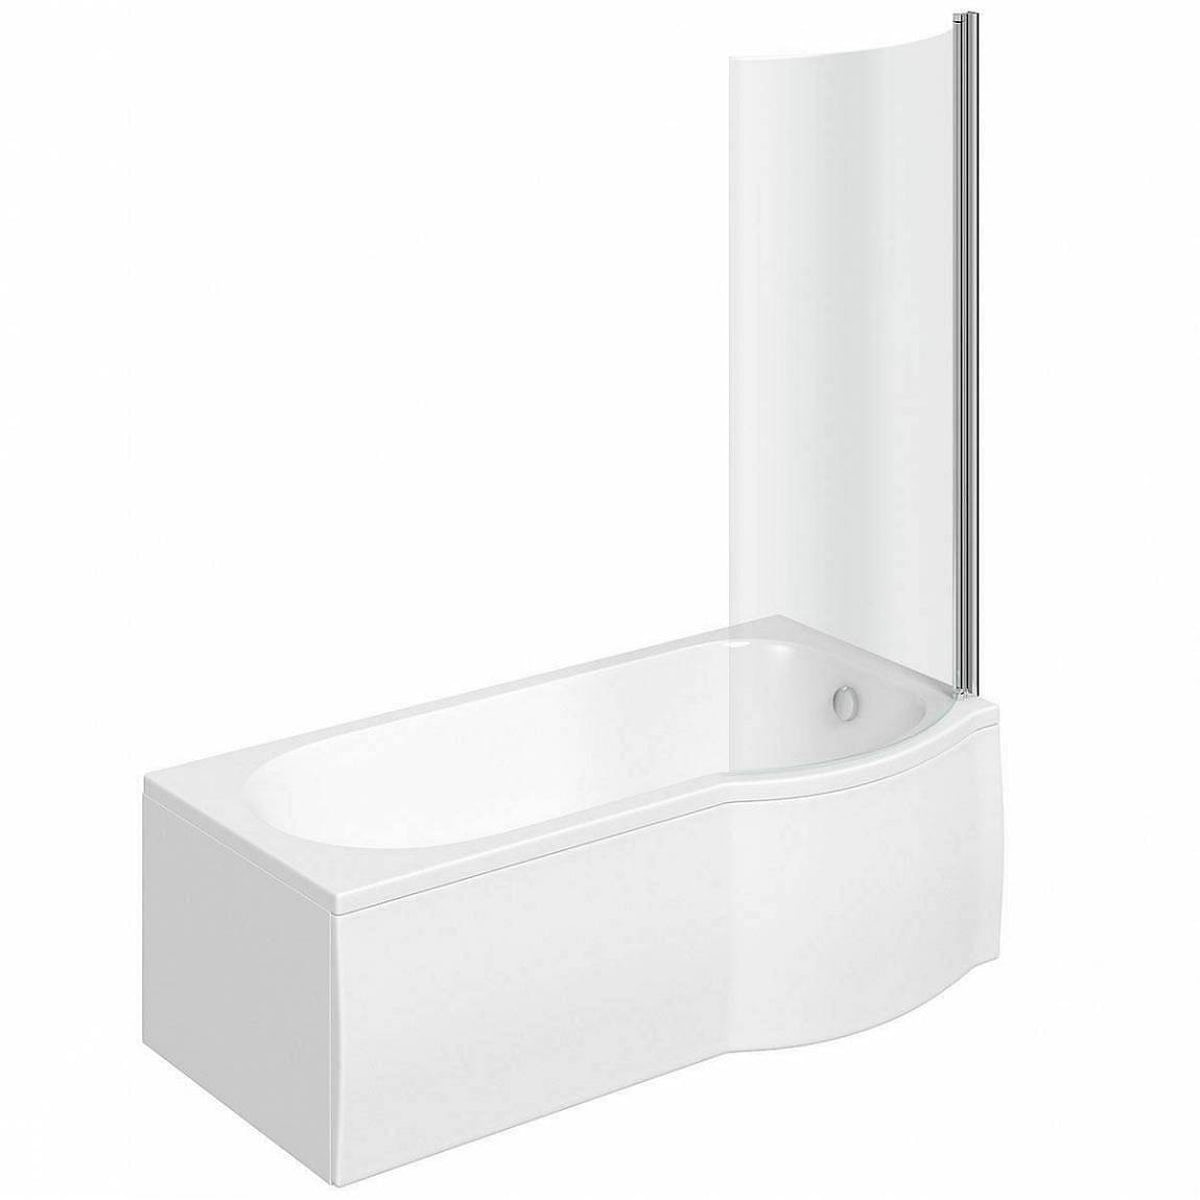 orchard p shaped right handed shower bath 1500mm with 6mm shower click to zoom